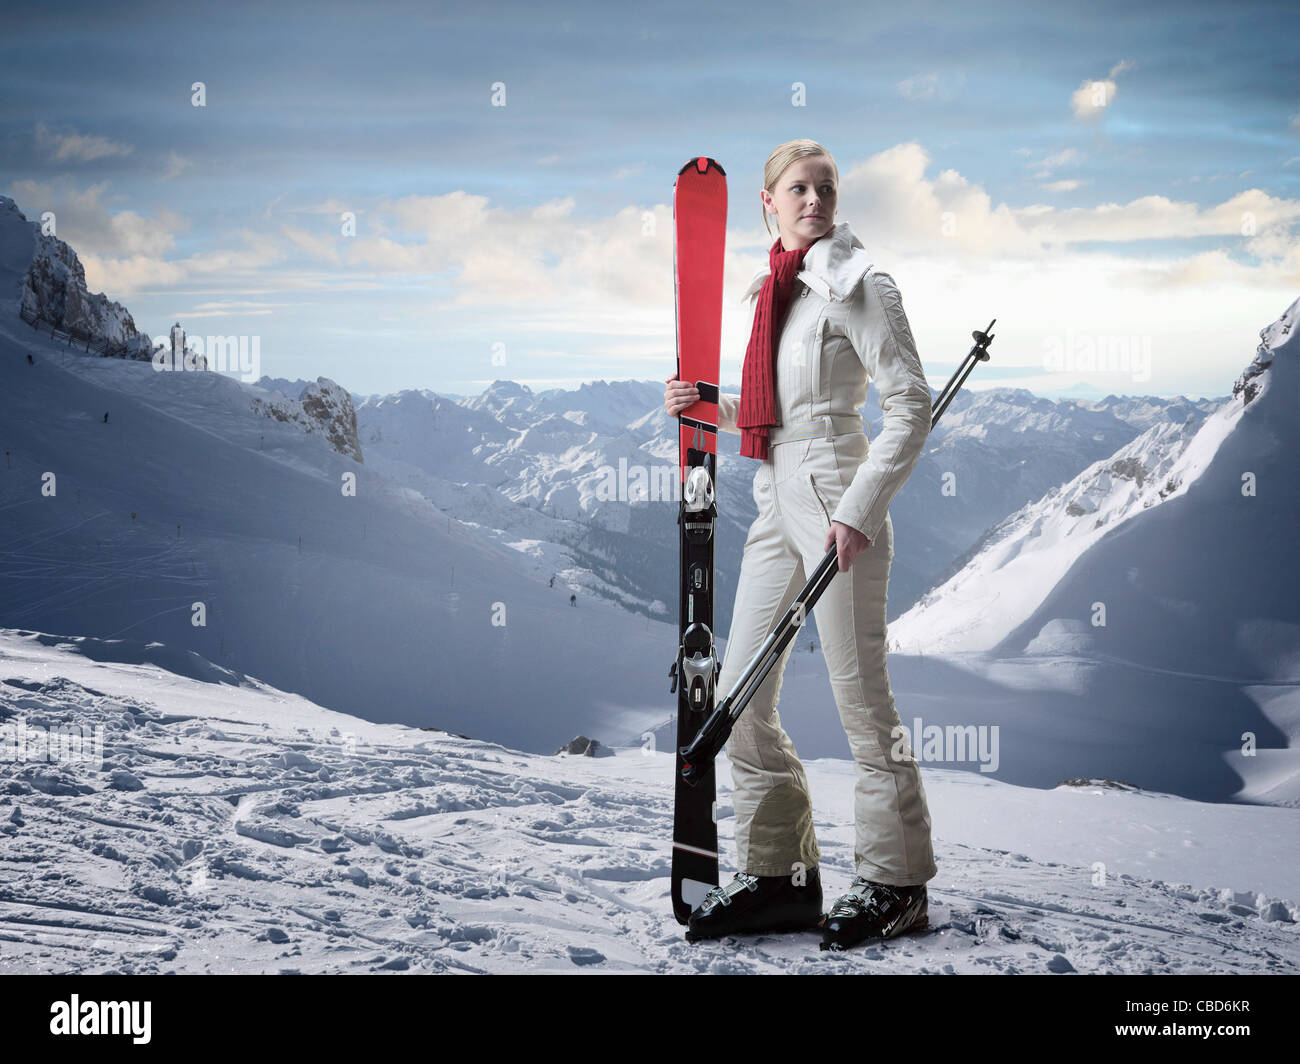 Woman carrying skis on snowy slope Photo Stock